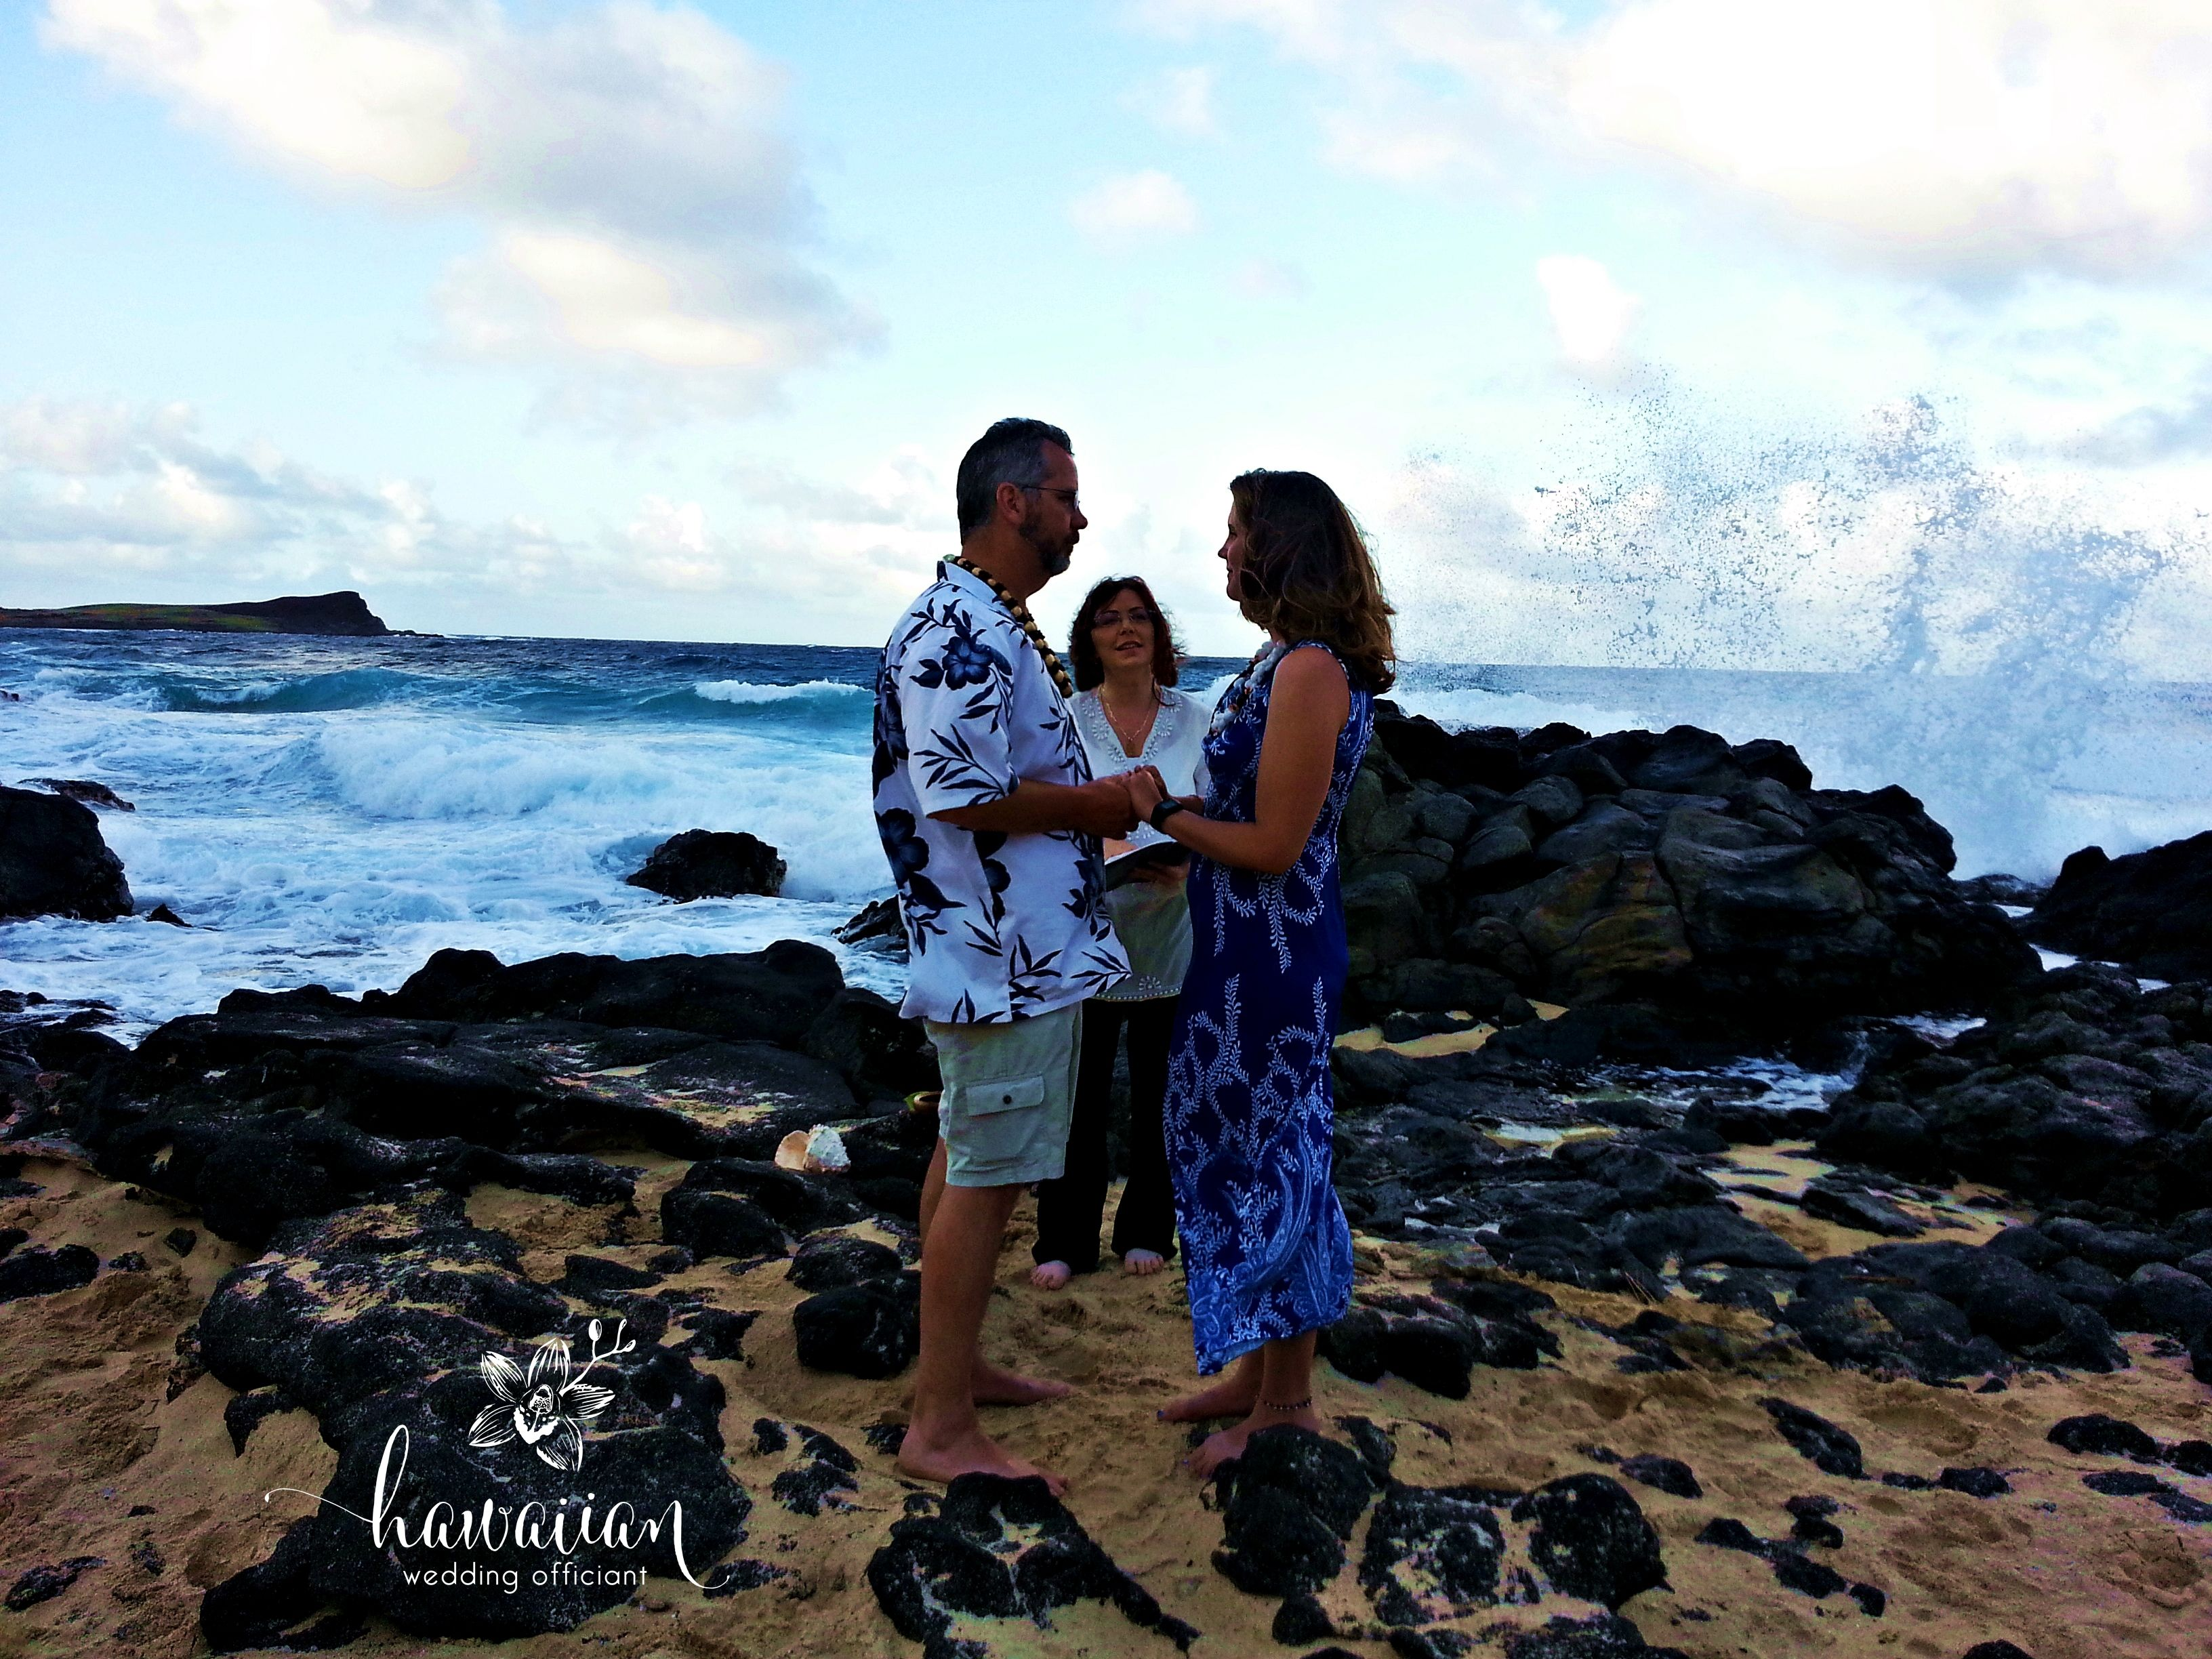 Makapuu ceremony at sunset. Look at those waves behind us! Wow!